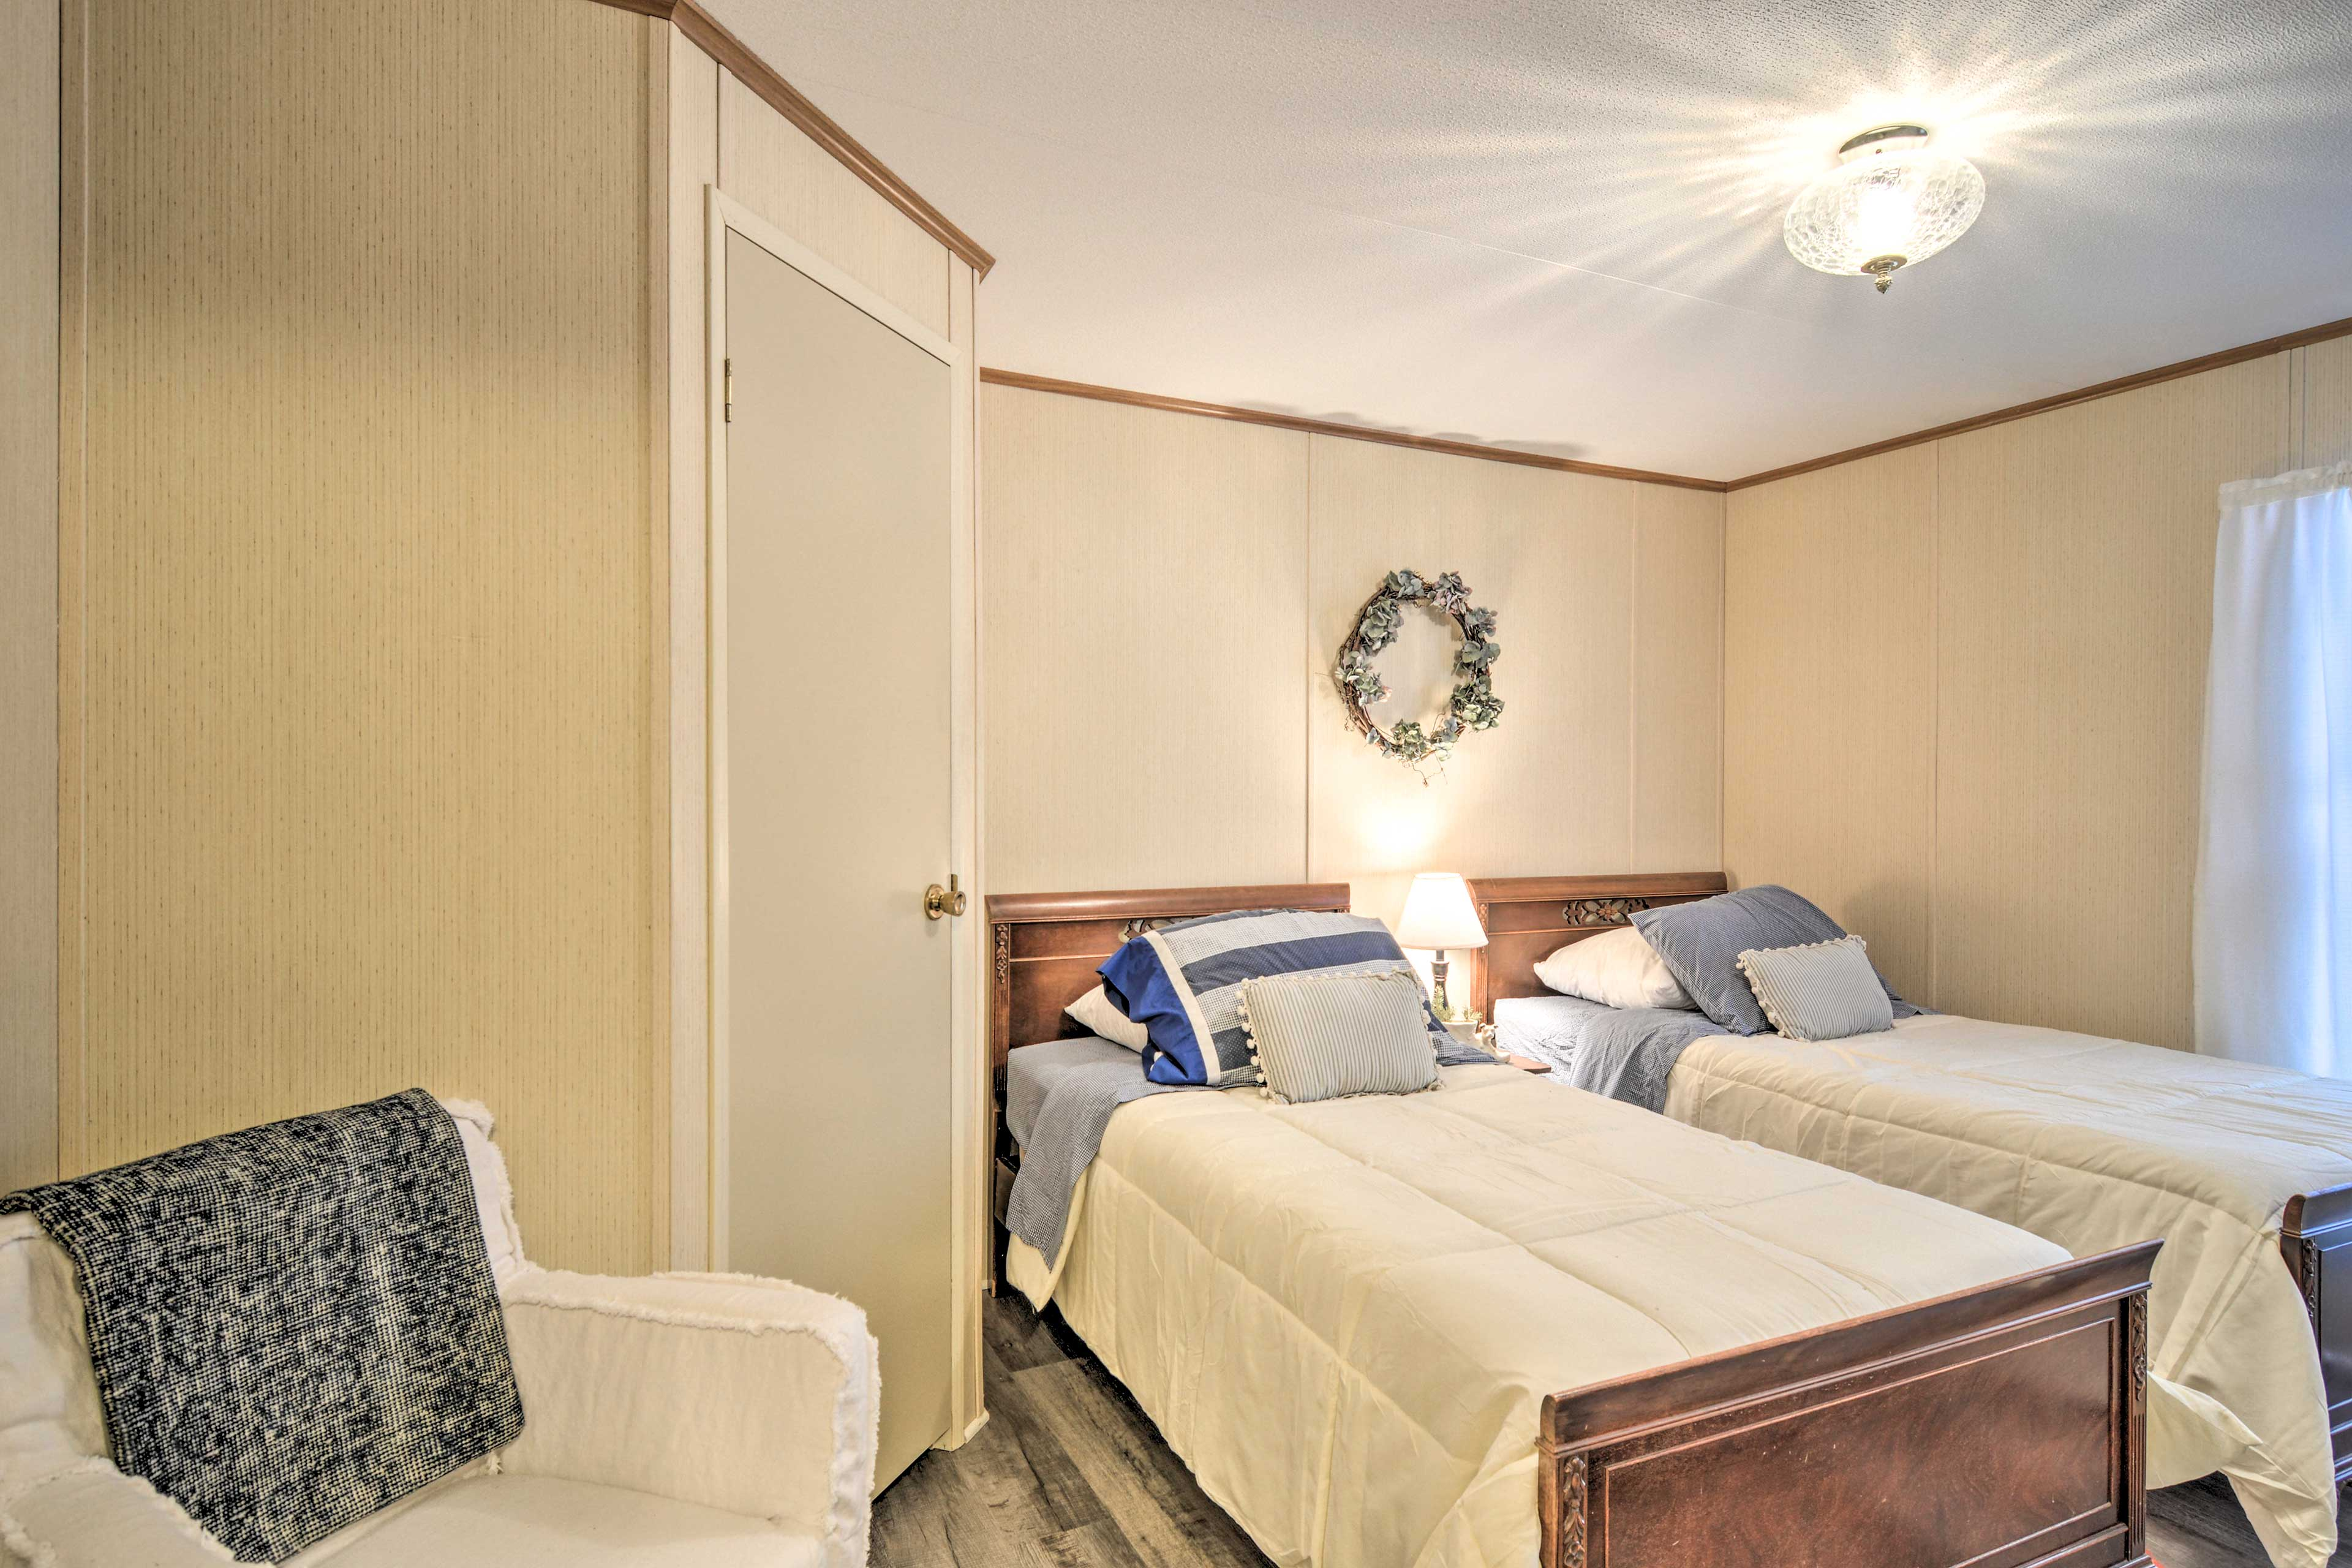 This room offers 2 twin beds, ideal for children.